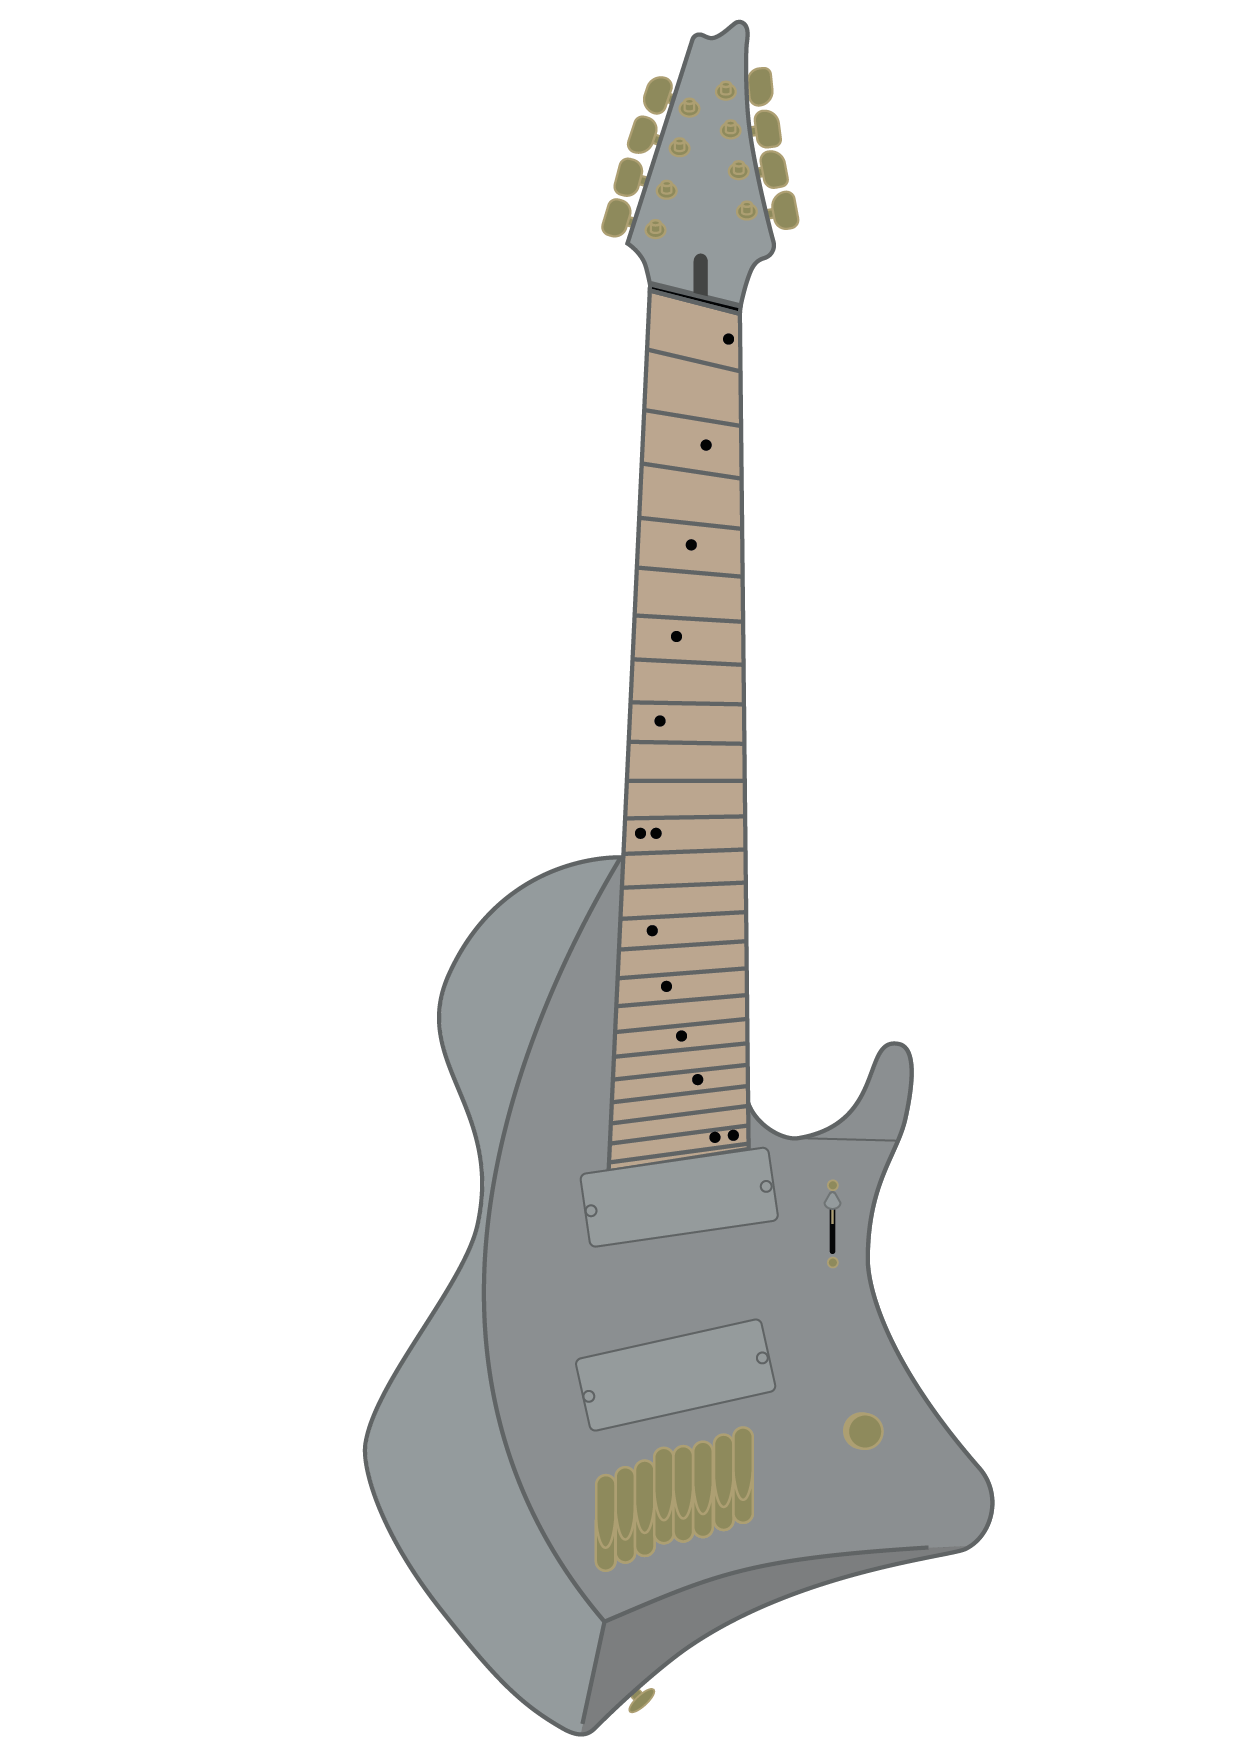 Typographic drawing guitar. Graphic draw of tosin